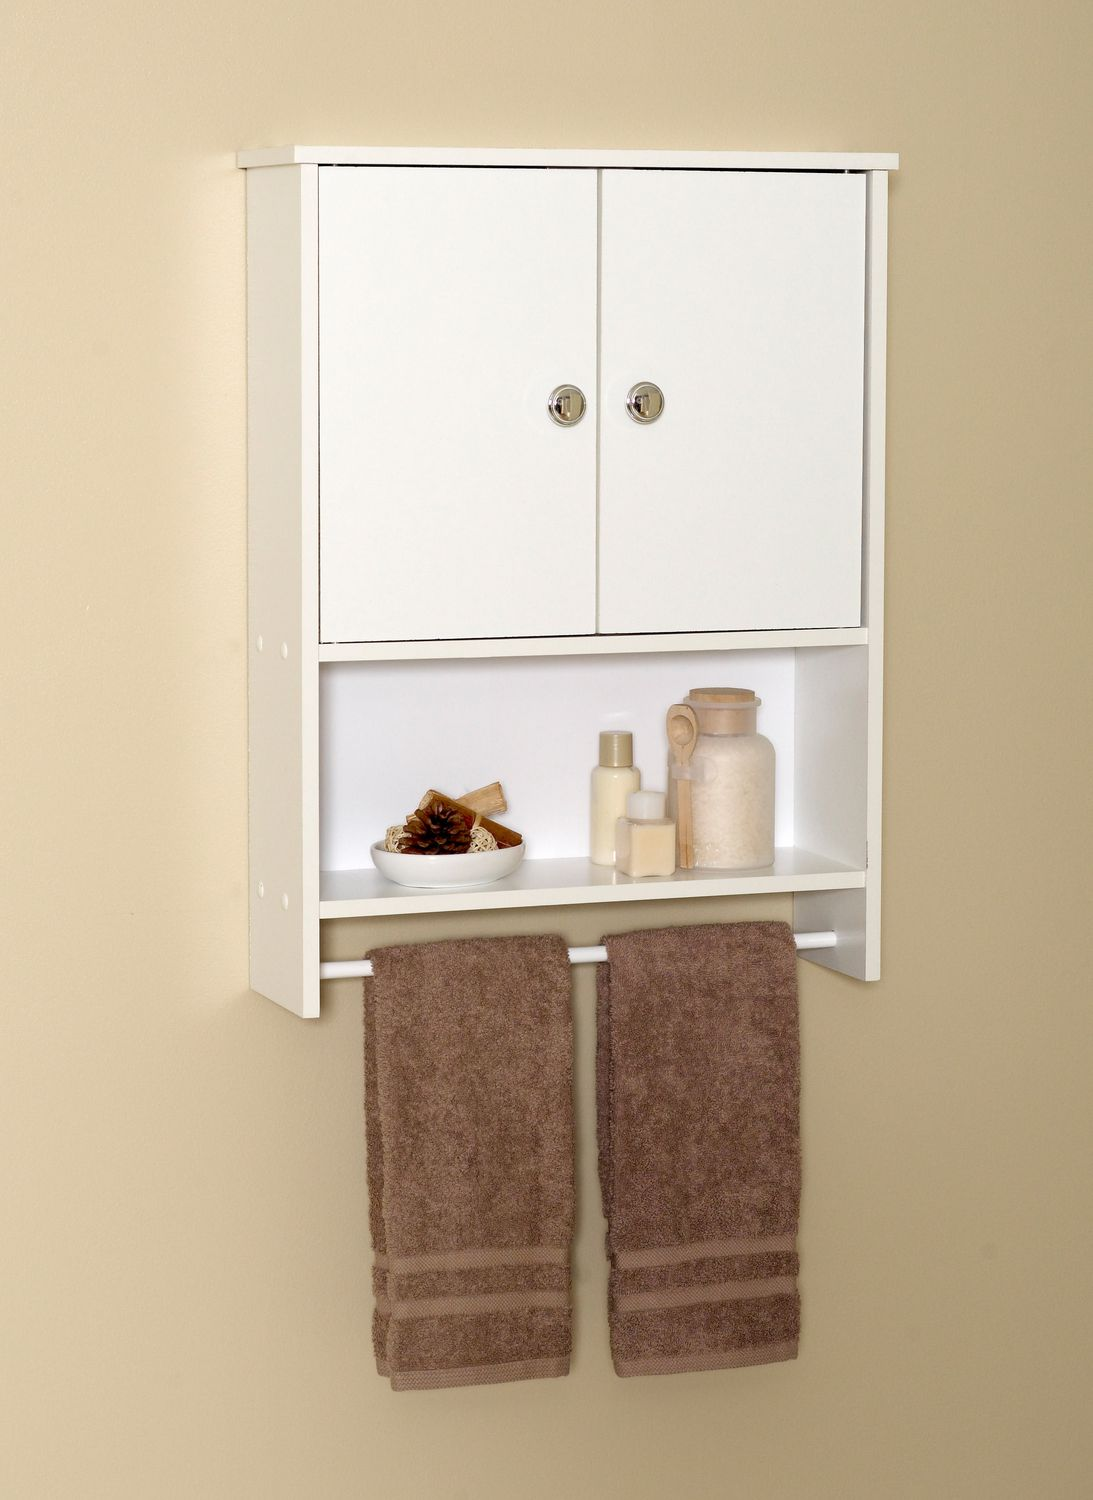 ce02489b8d0 MAINSTAYS White Wood 2-Door Wall Cabinet - image 1 of 3 zoomed image